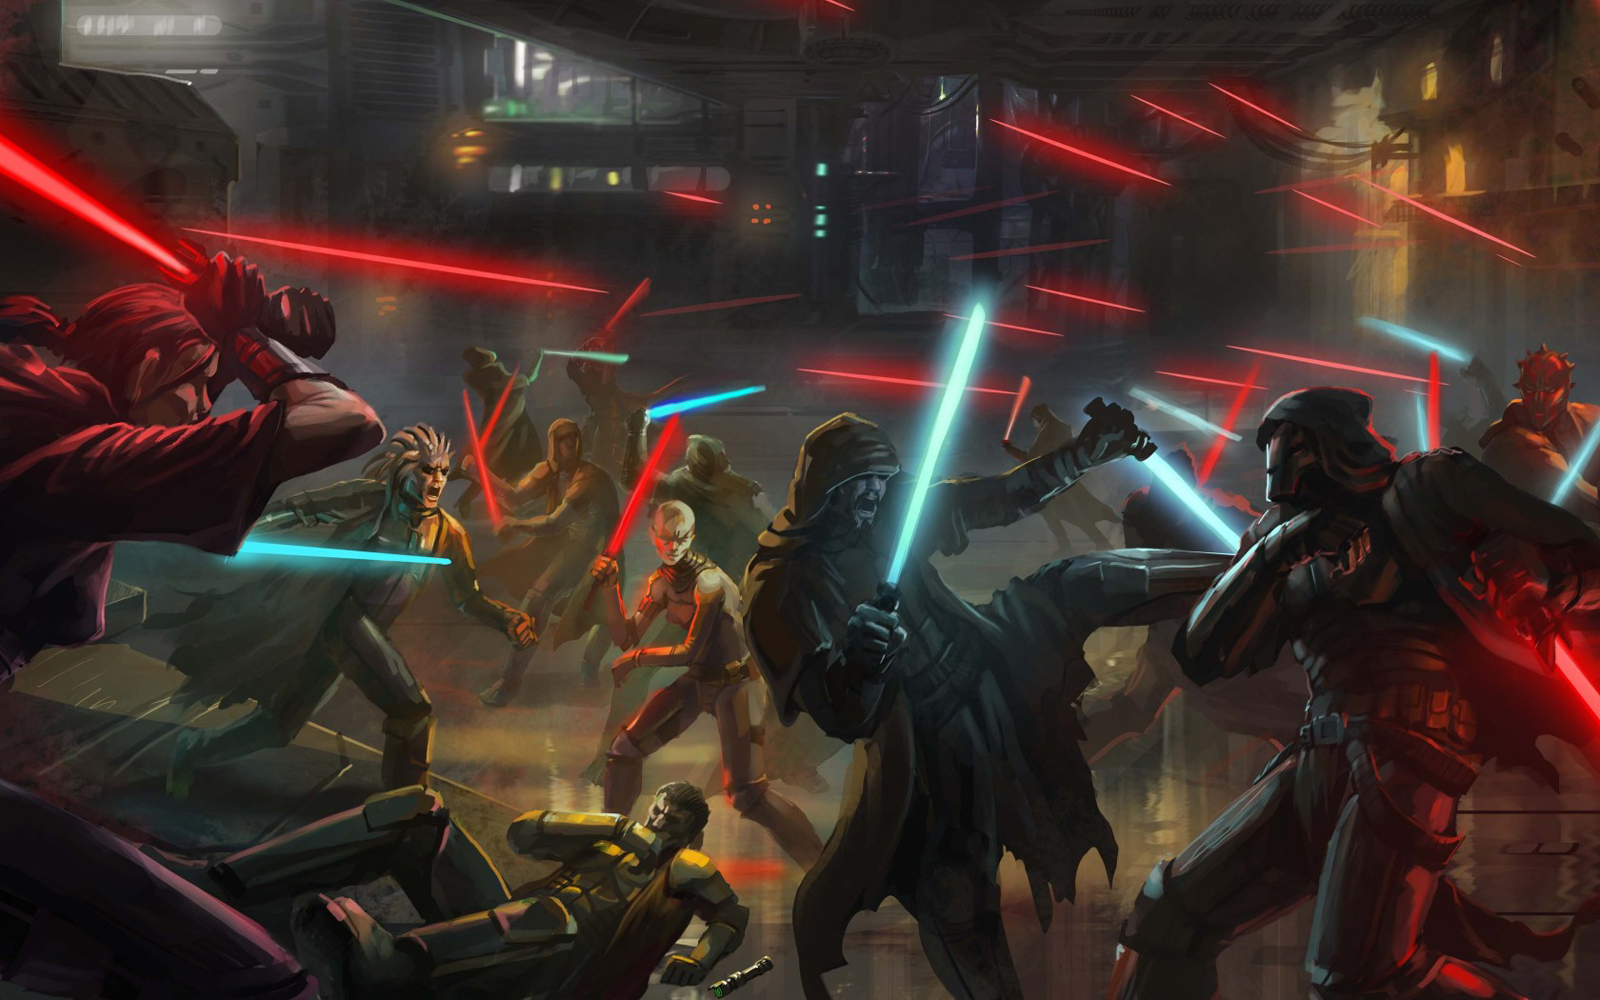 Star Wars Knights Of The Old Republic Hd Desktop Wallpaper Rewallpaper